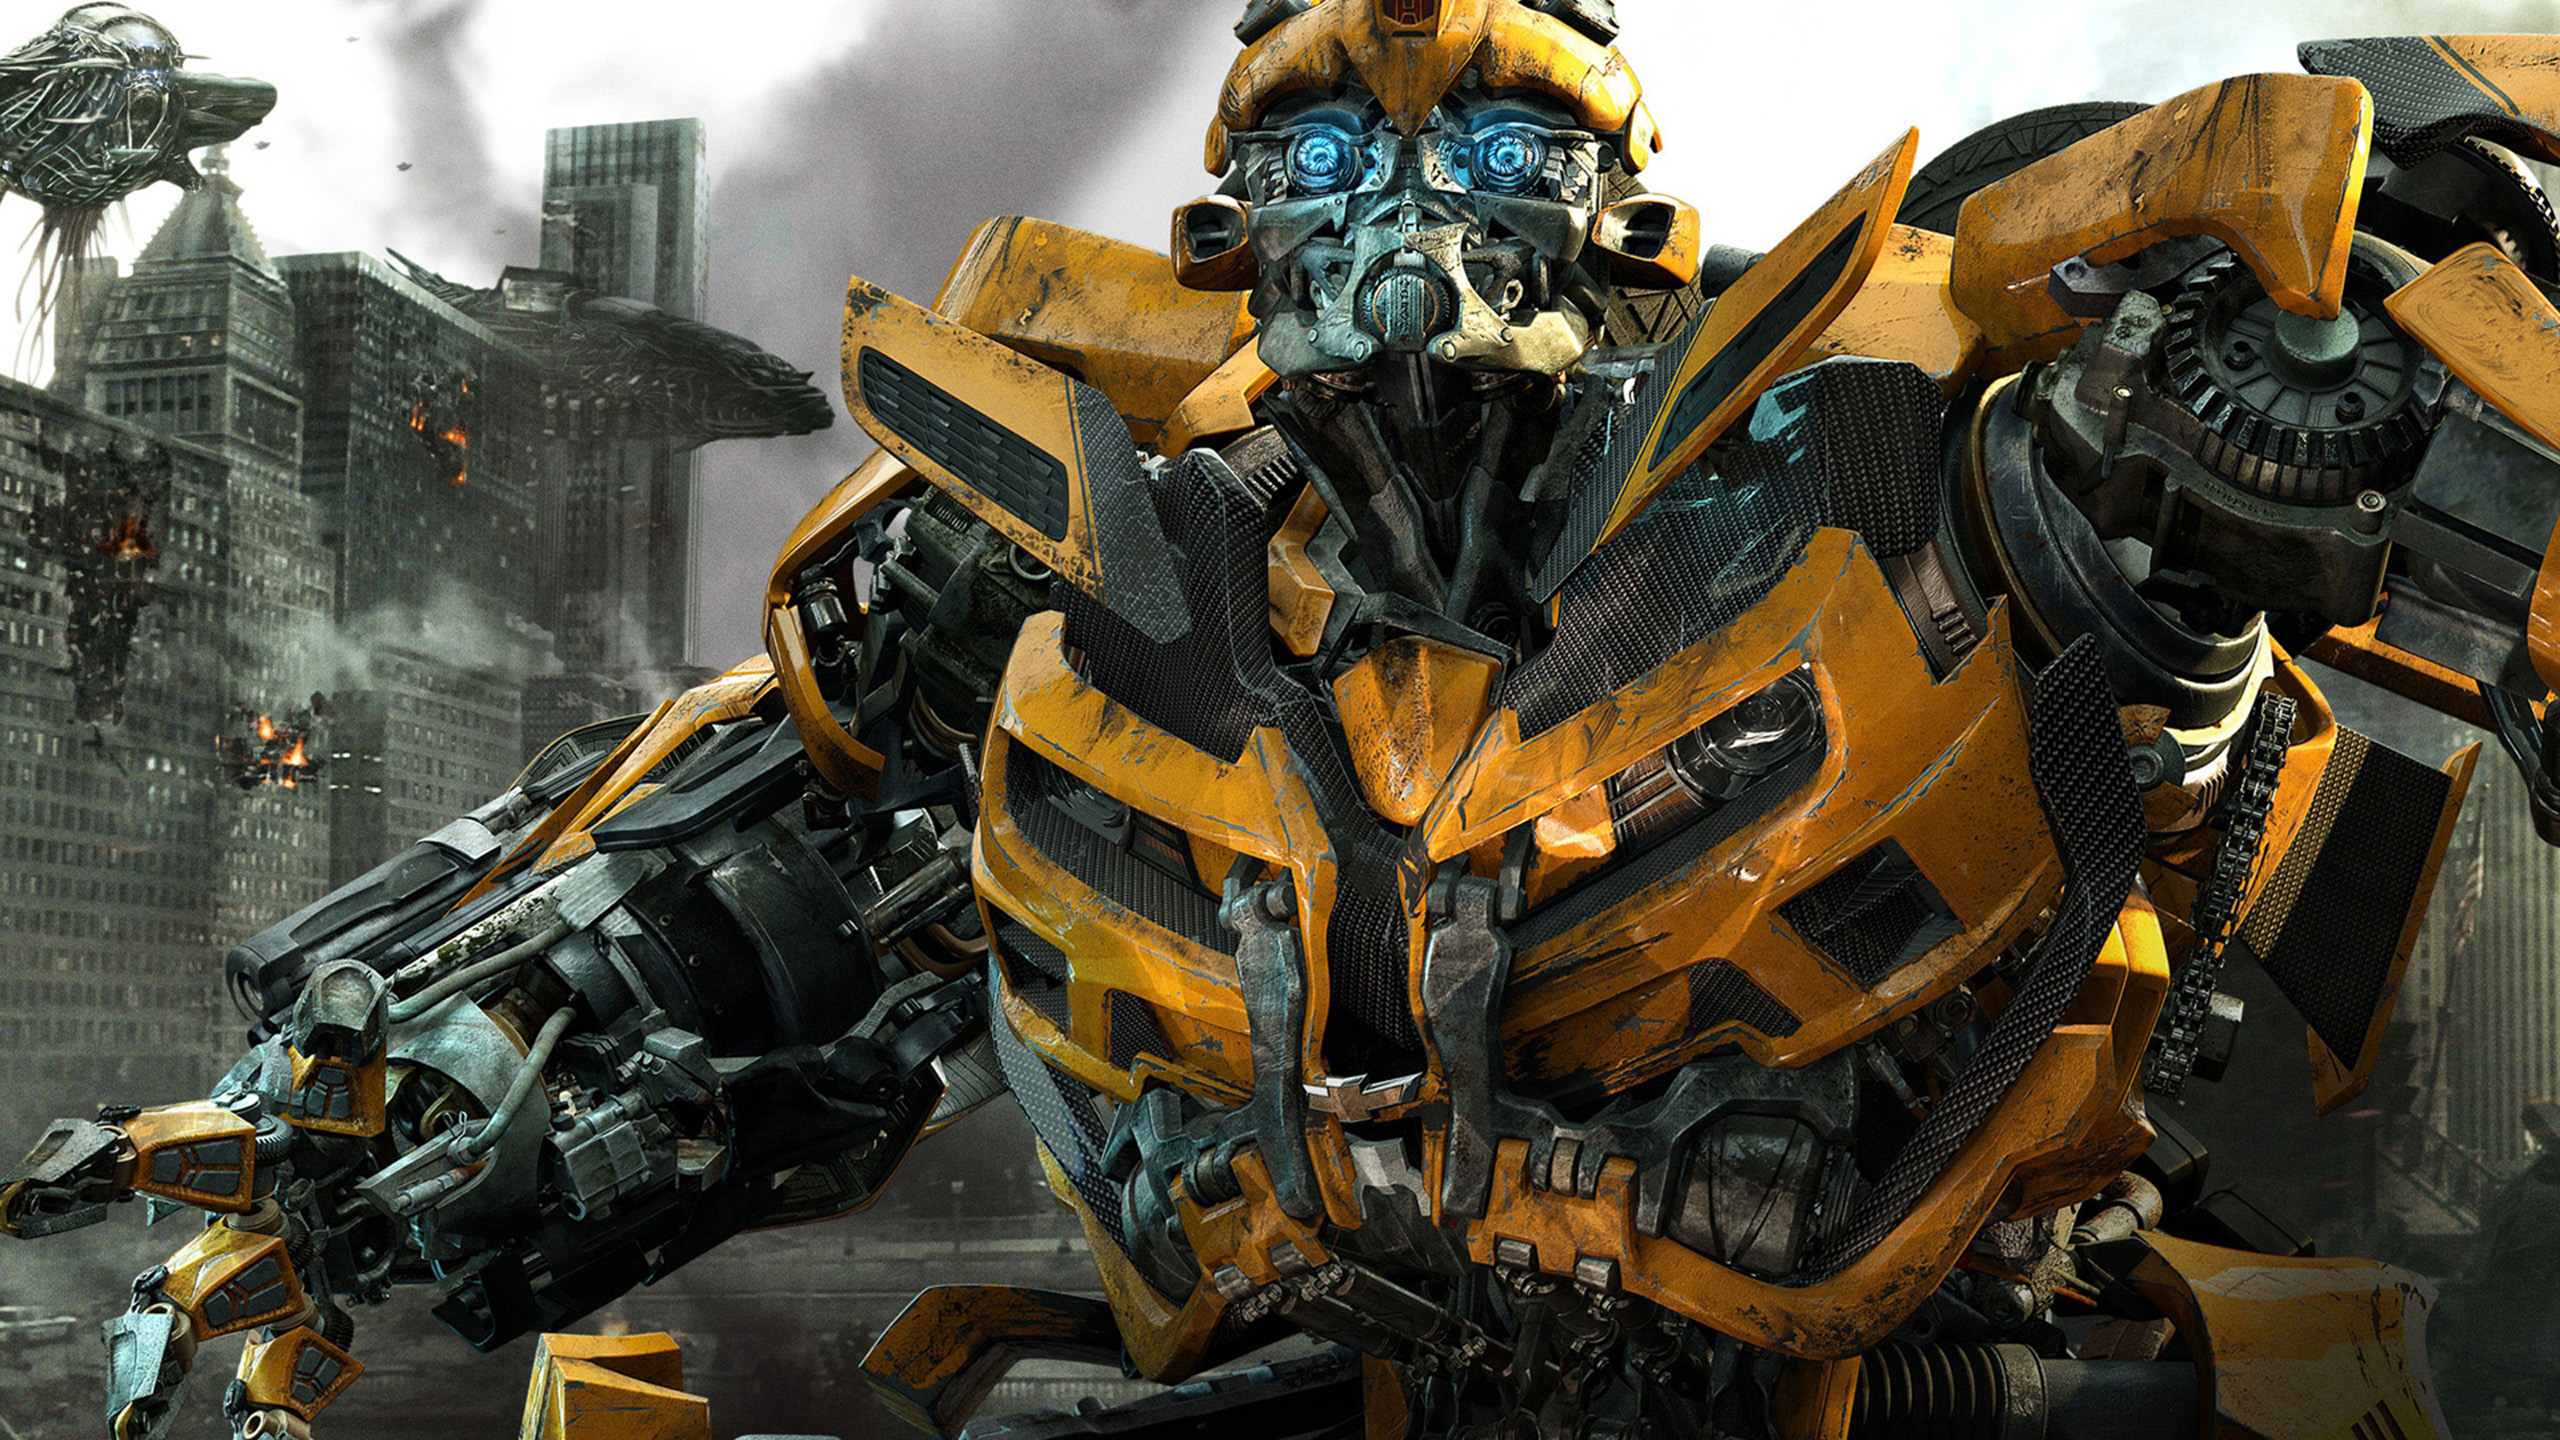 Comedyoutlet Hd Transformers Wallpapers Backgrounds For Download 2560x1440